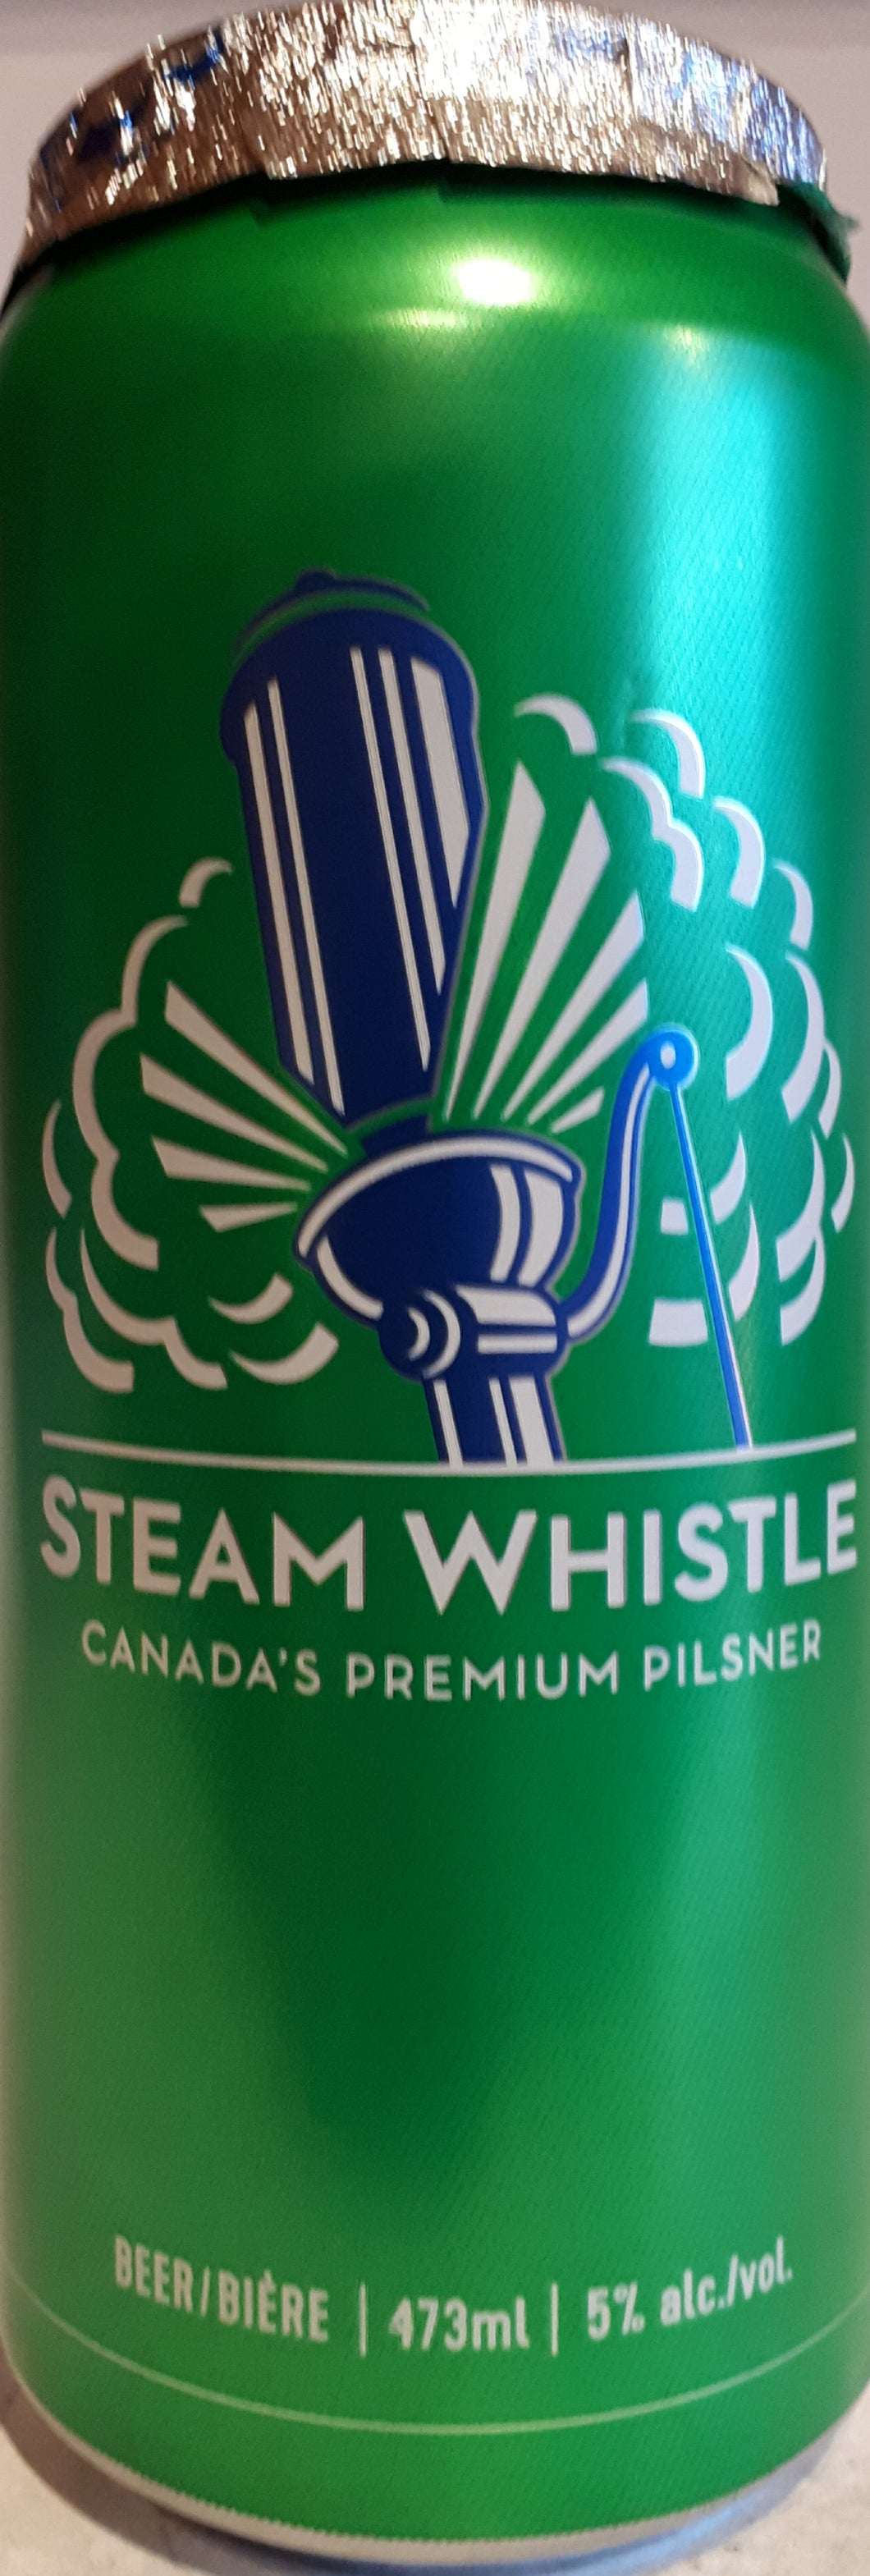 Brasserie Steam Whistle Pilsner 473ml